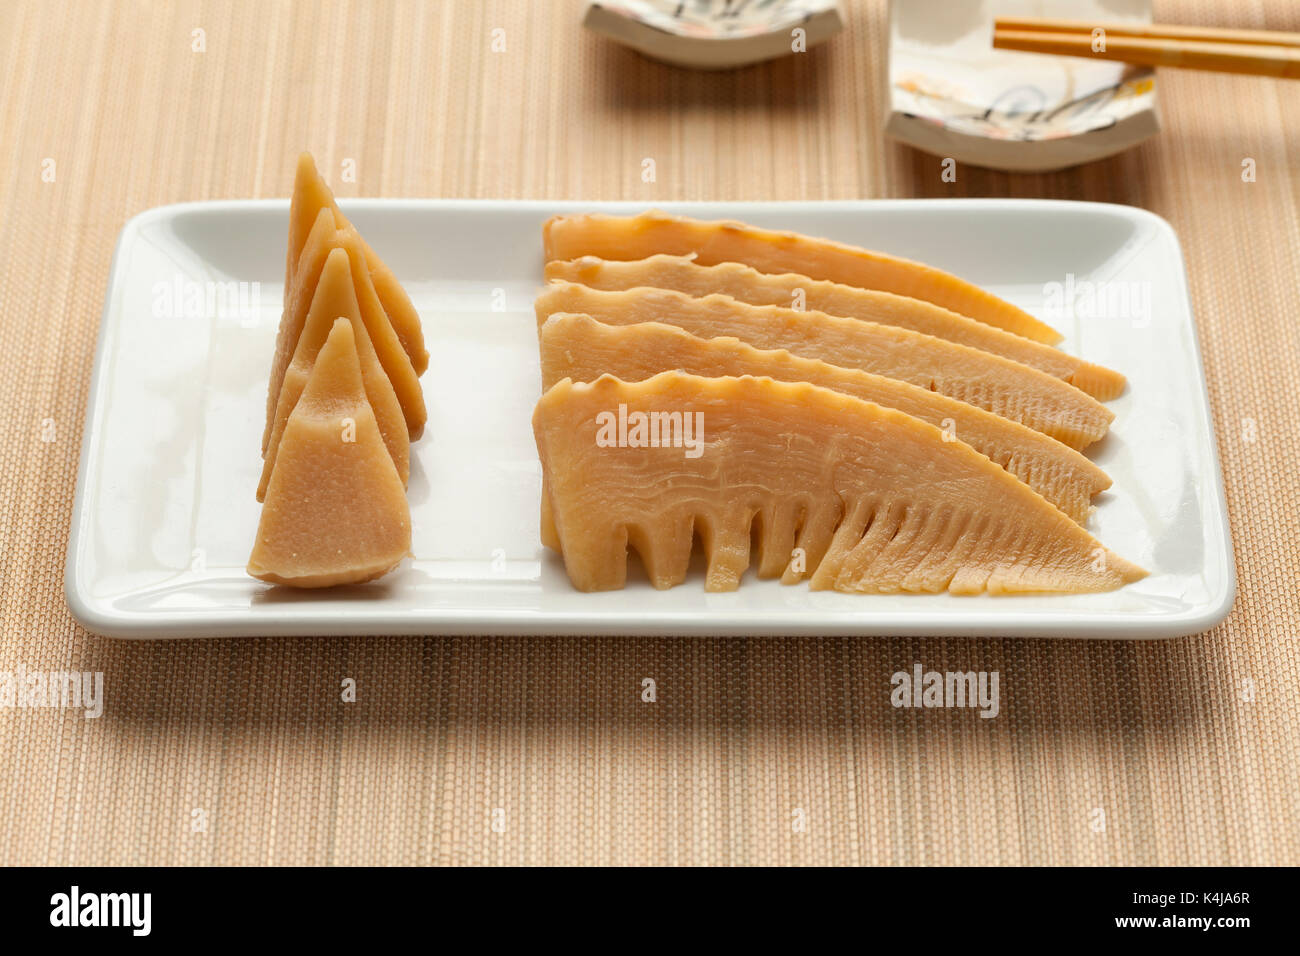 Japanese simmered young bamboo shoots on a dish - Stock Image